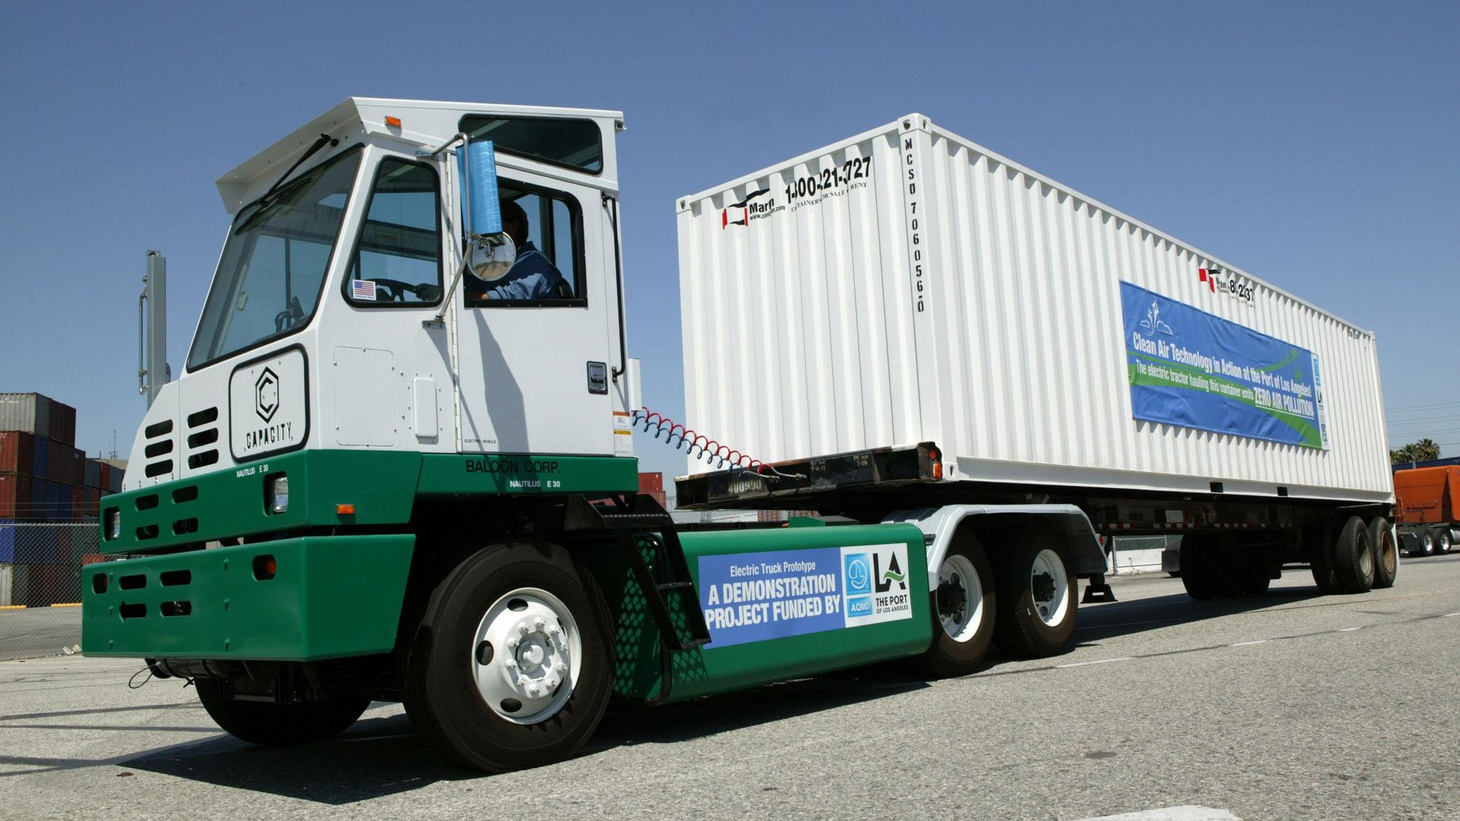 We hear about the impact of air pollution around the Port of LA, talk to both sides and learn what the Supreme Court had to say about the Port's Clean Truck Program.